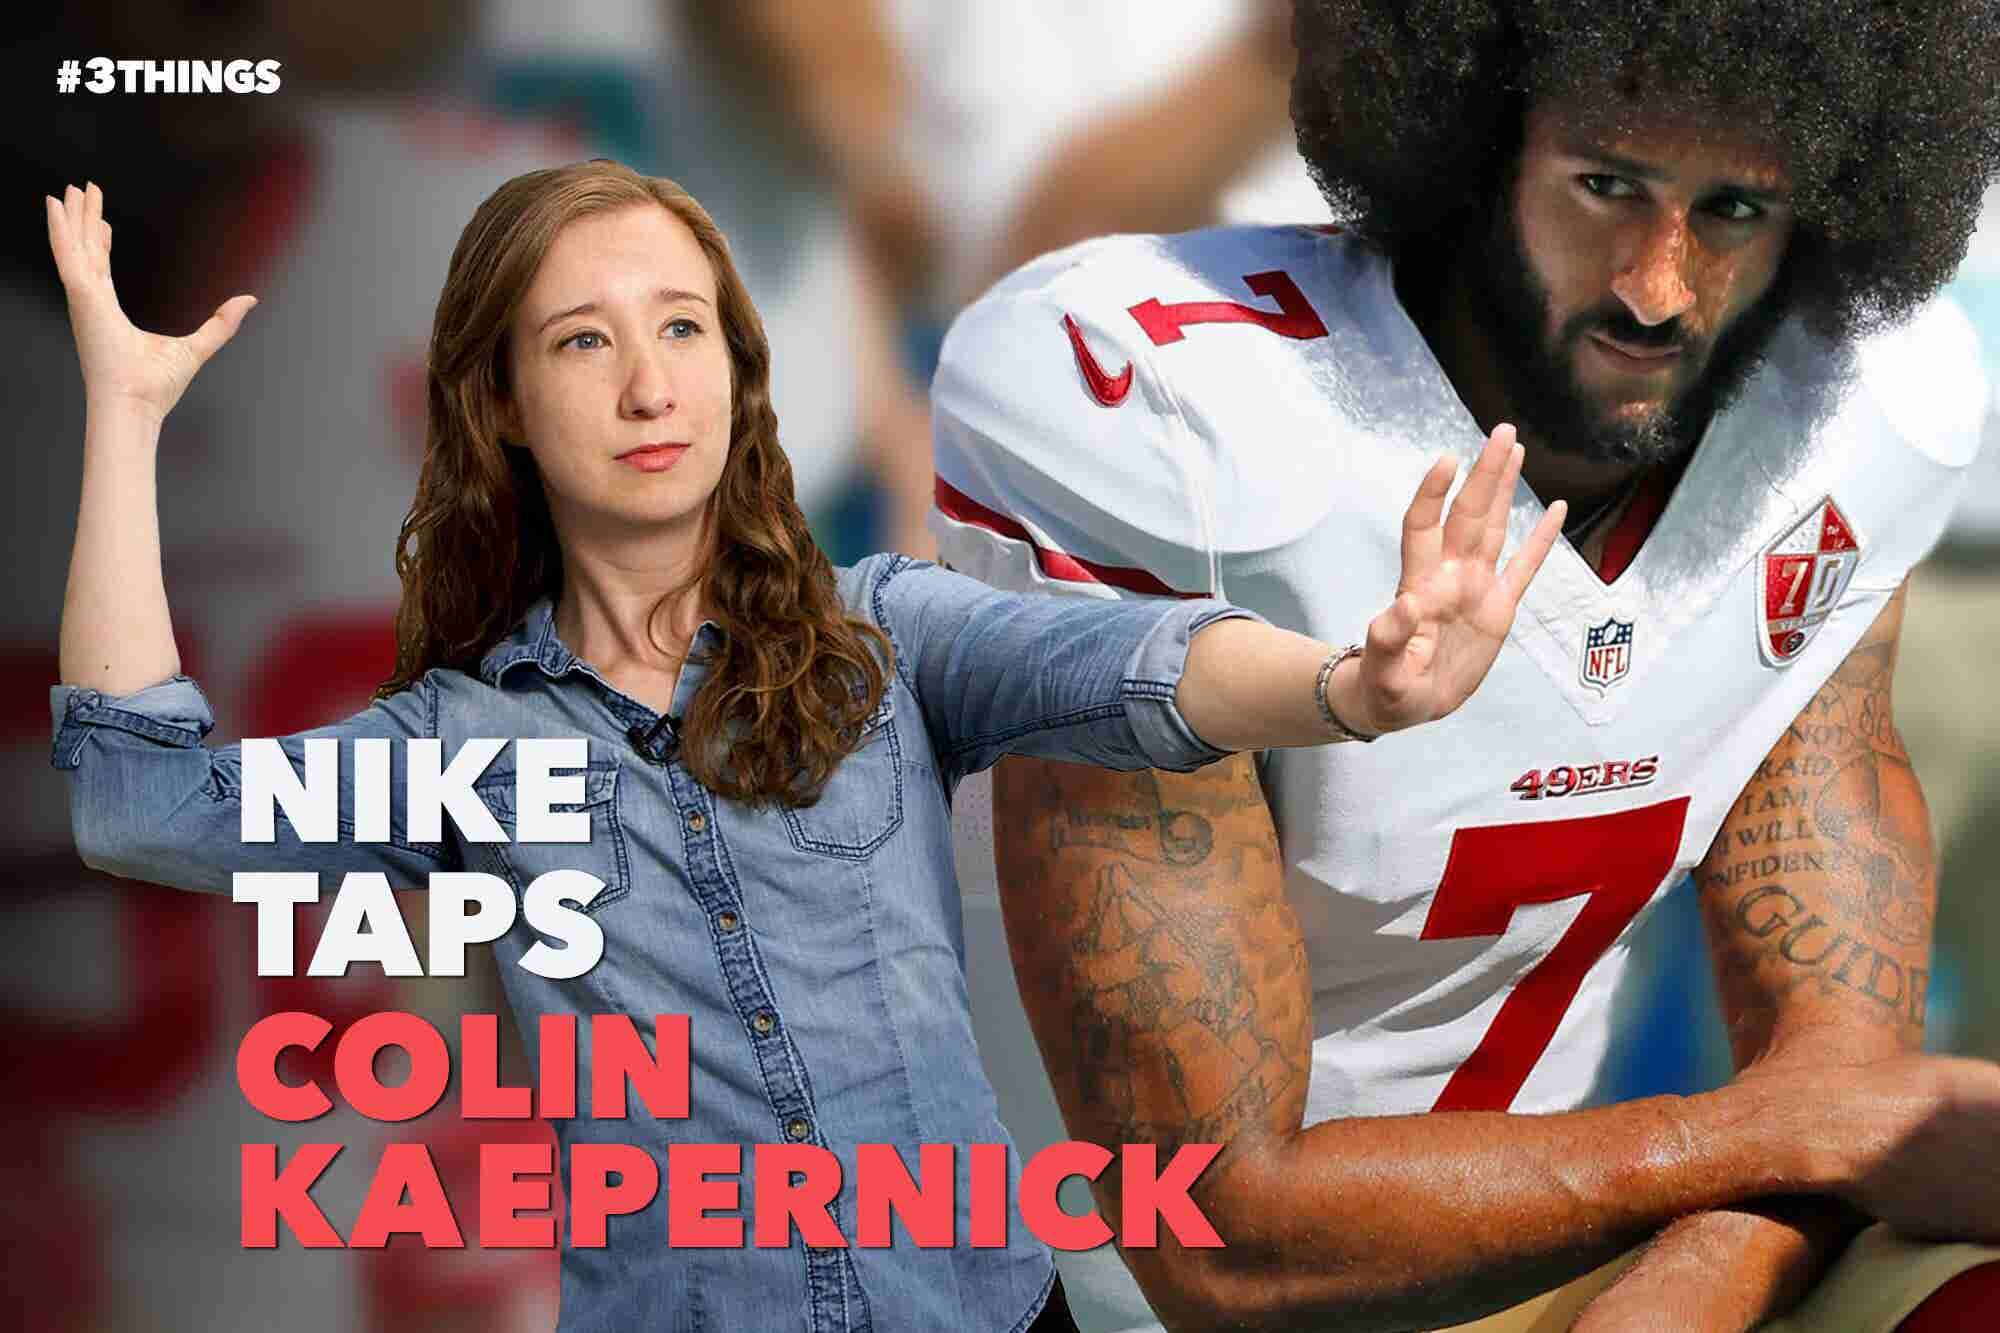 Nike Features Colin Kaepernick for 'Just Do It' Anniversary. 3 Things...